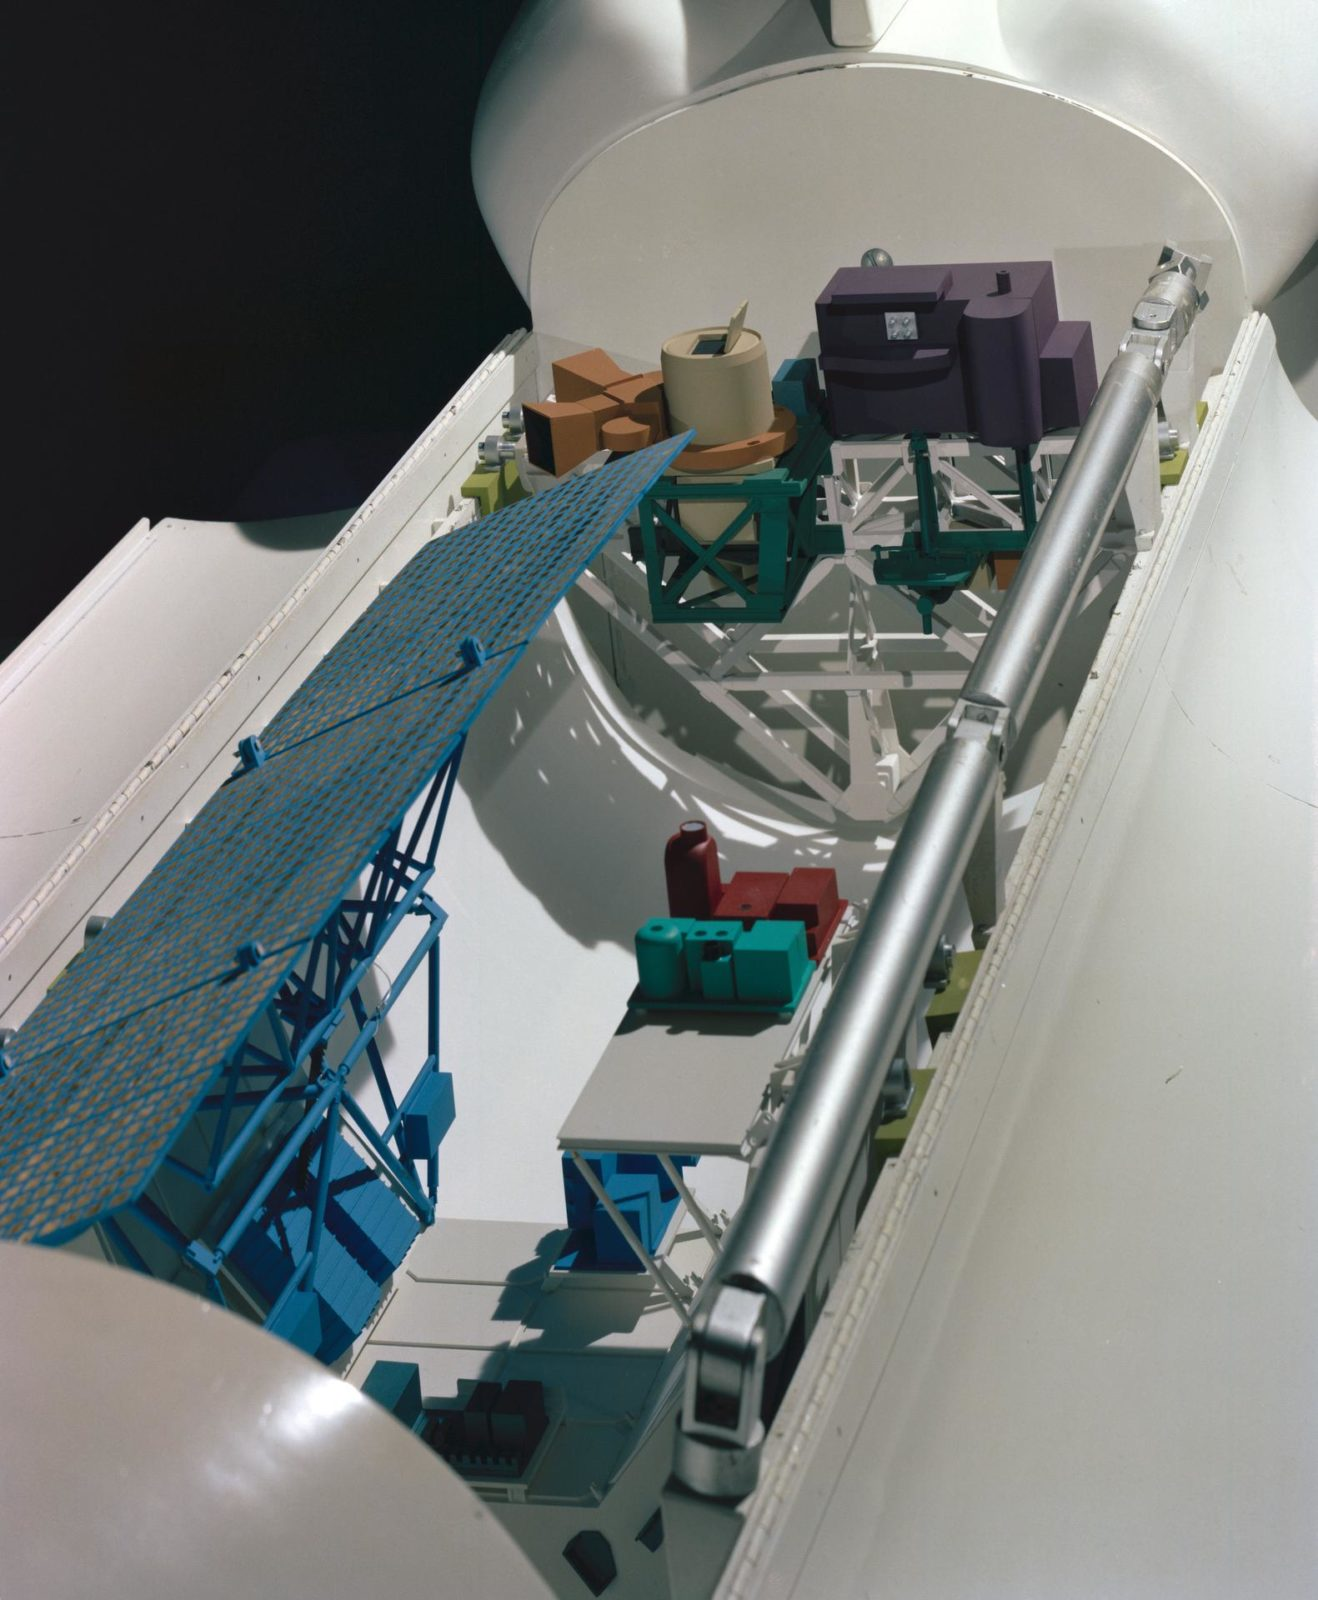 Model showing OSTA-3 and other payloads in the shuttle orbiter cargo bay